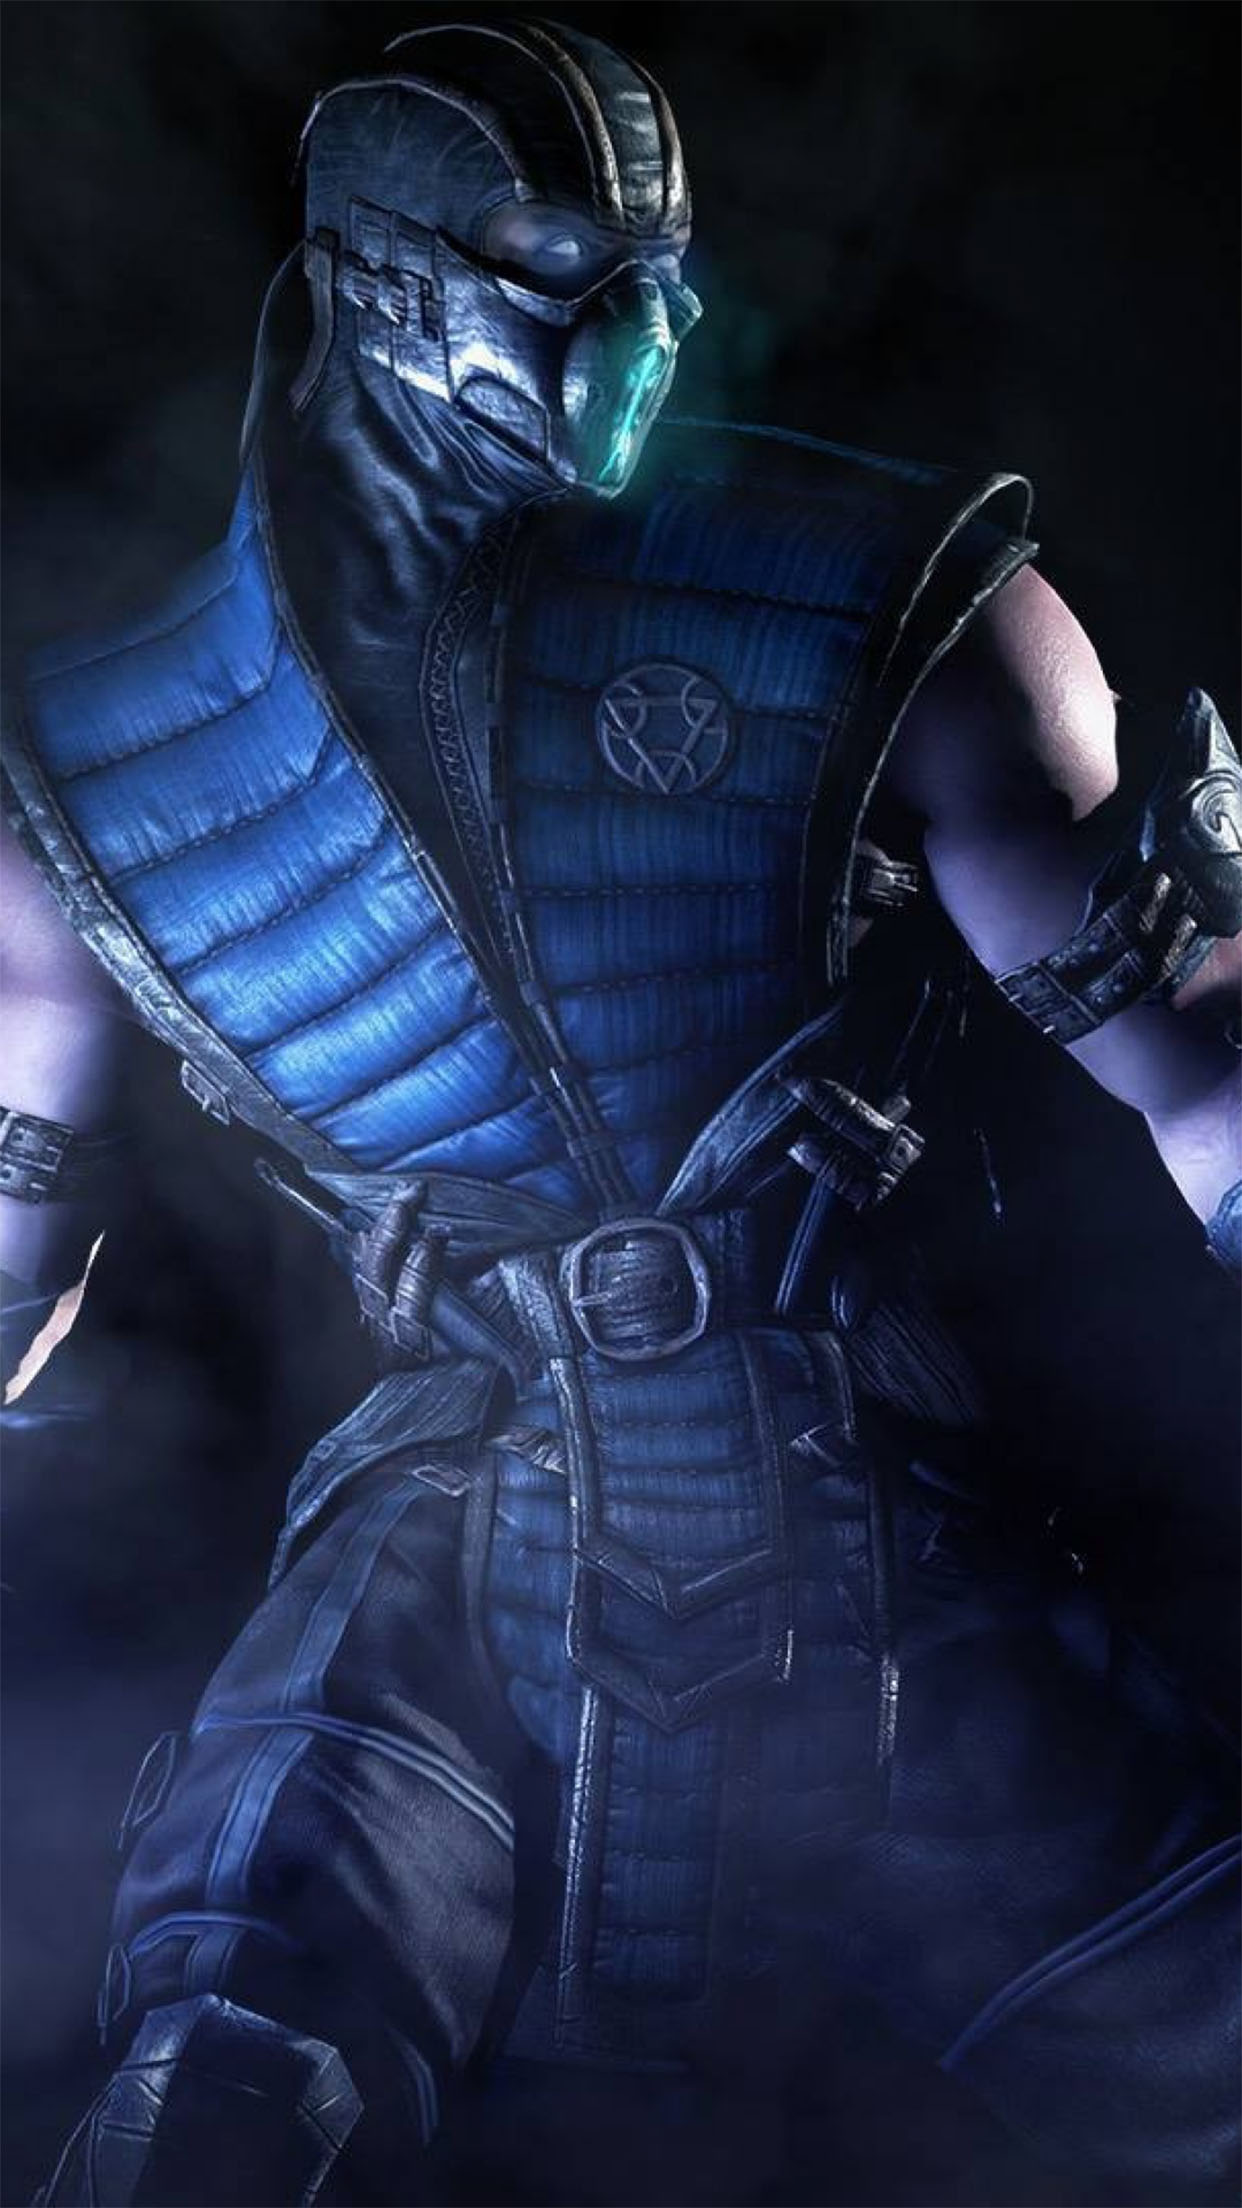 Sub Zero Mortal Kombat X Iphone Wallpaper Sub Zero Wallpaper For Iphone X 8 7 6 Free Download